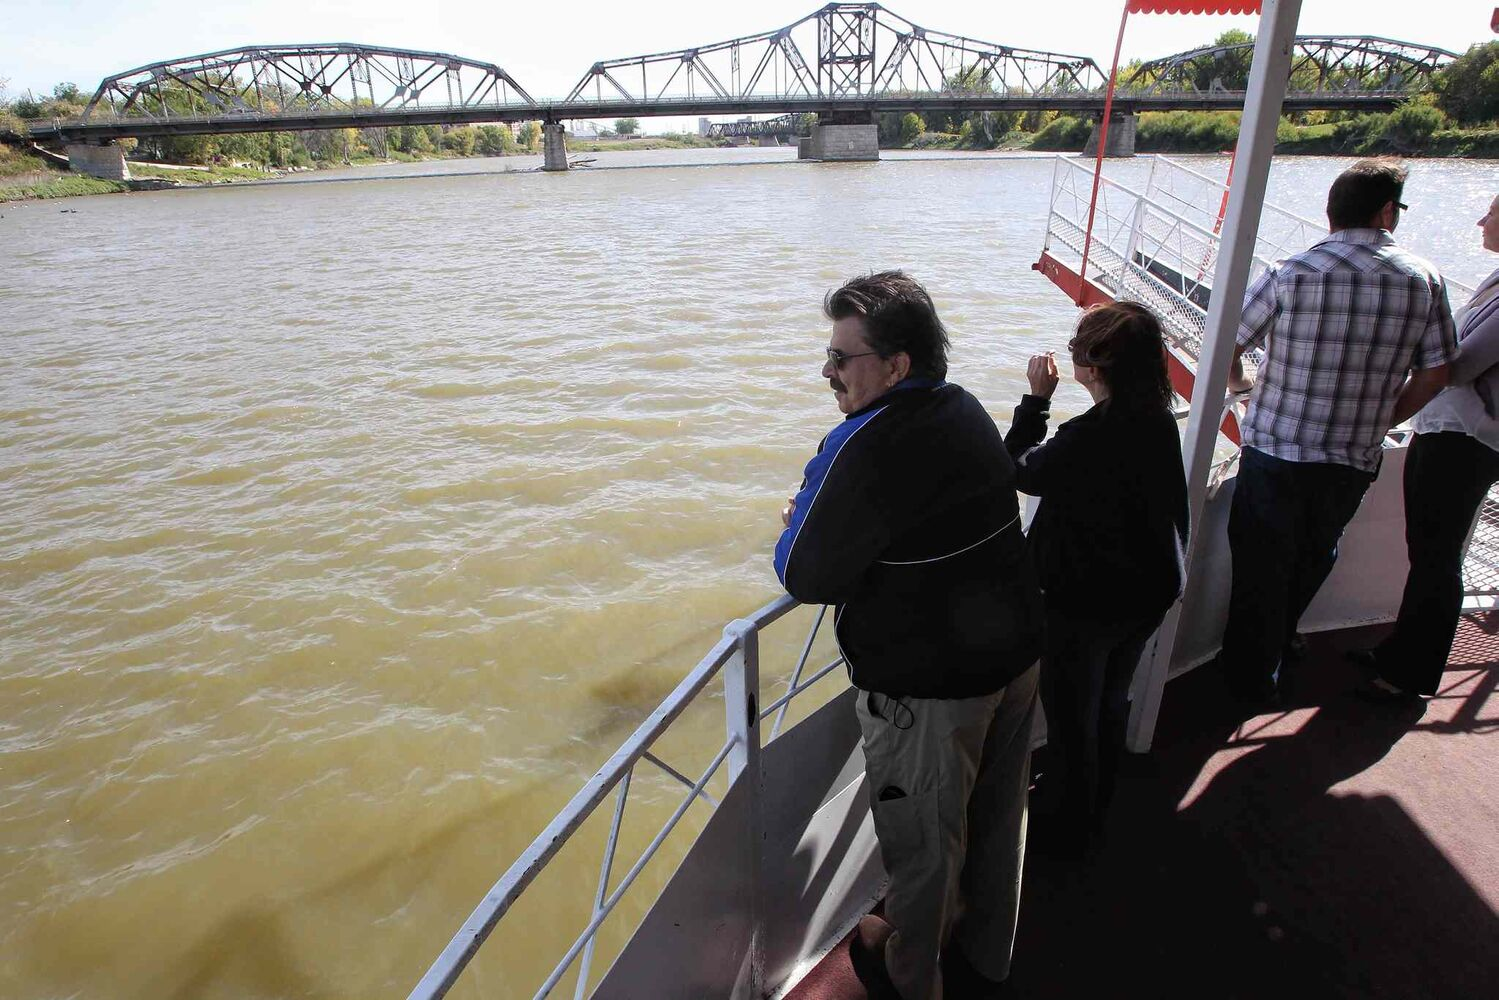 The Paddlewheel Queen cruised the Red River for the last time this year on Sunday.   (Mike Deal / Winnipeg Free Press)